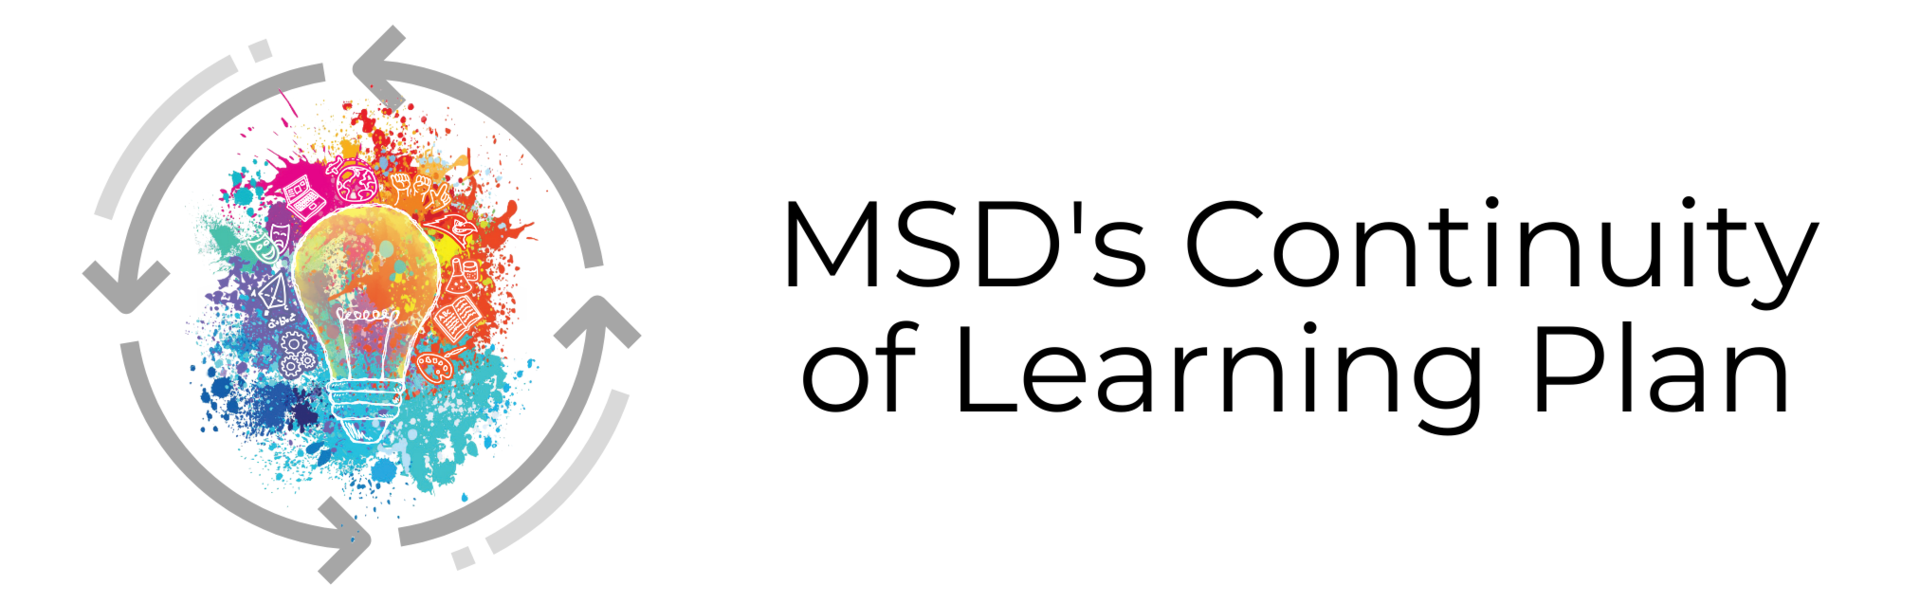 MSD's Continuity of Learning Plan